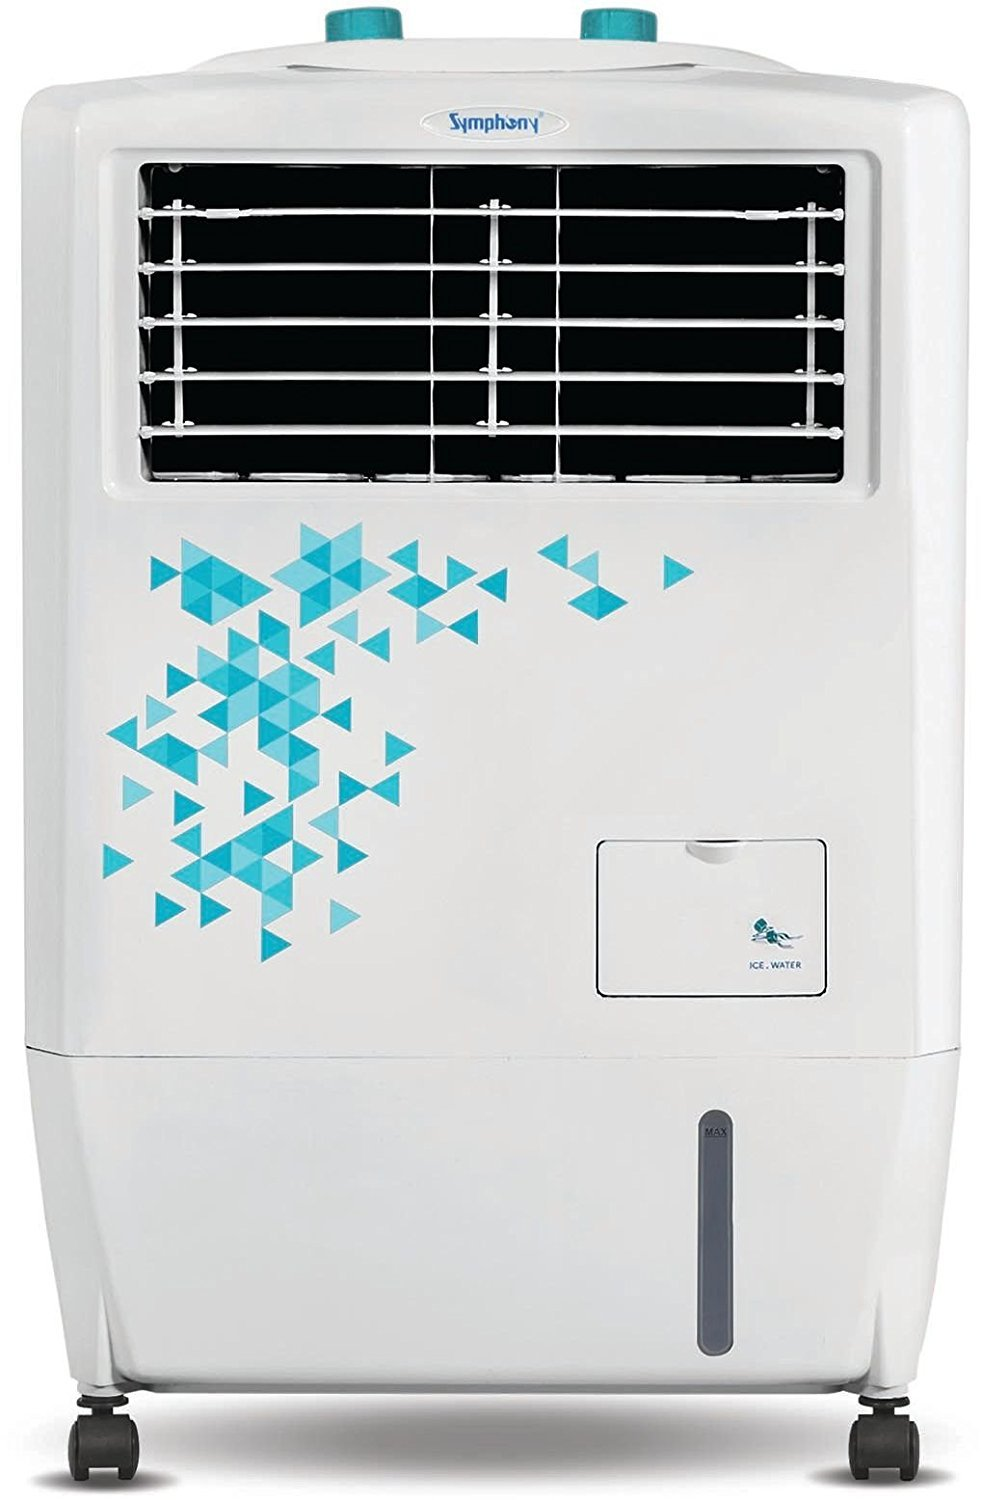 Top 7 Best Symphony Air Cooler under 6000 in India: Symphony Air Cooler